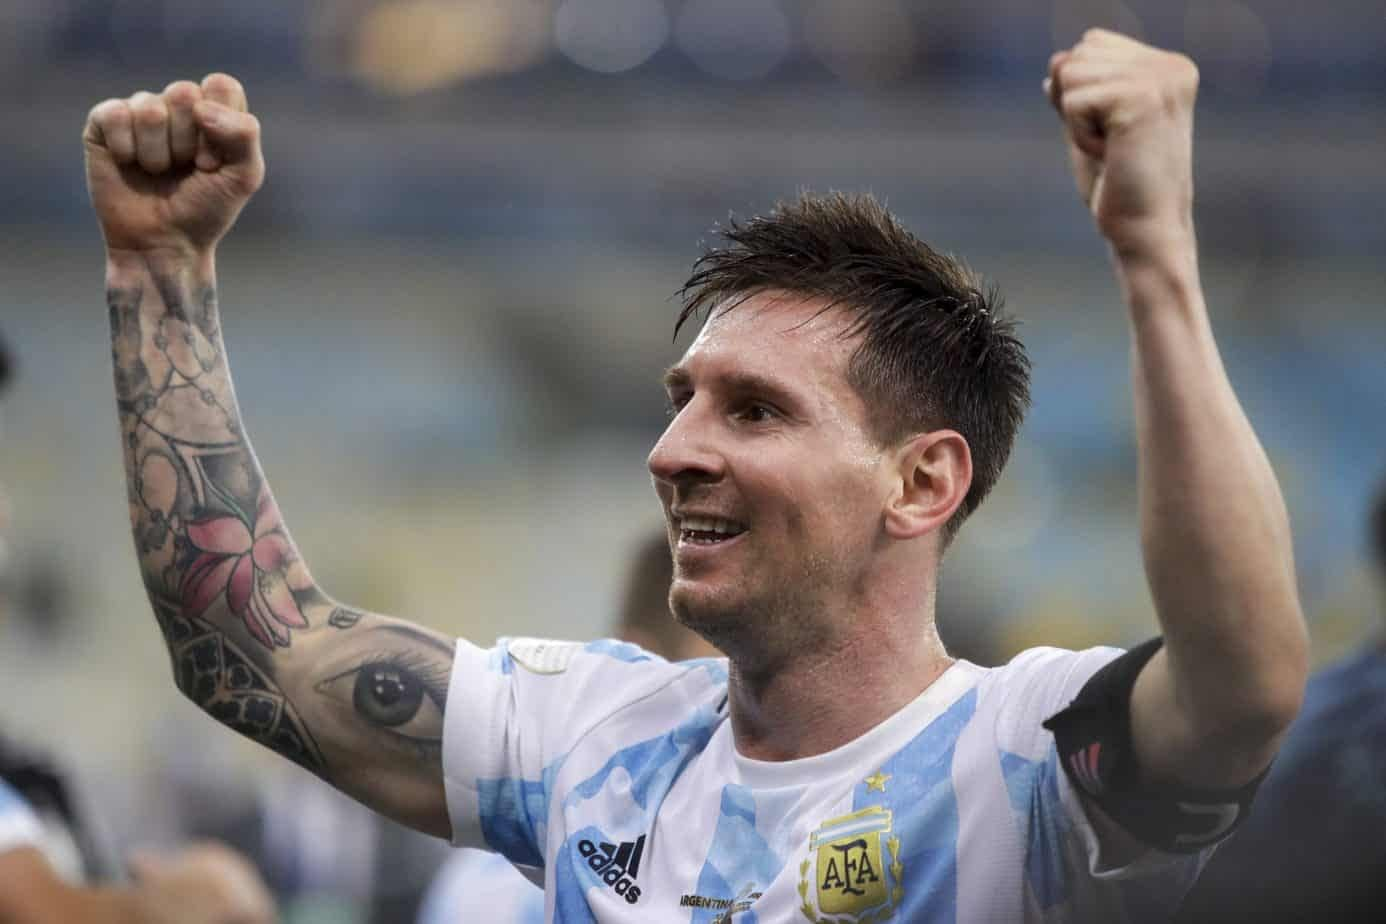 By posting a picture with the Copa America Trophy, Lionel Messi broke a record that was previously held by rival Cristiano Ronaldo